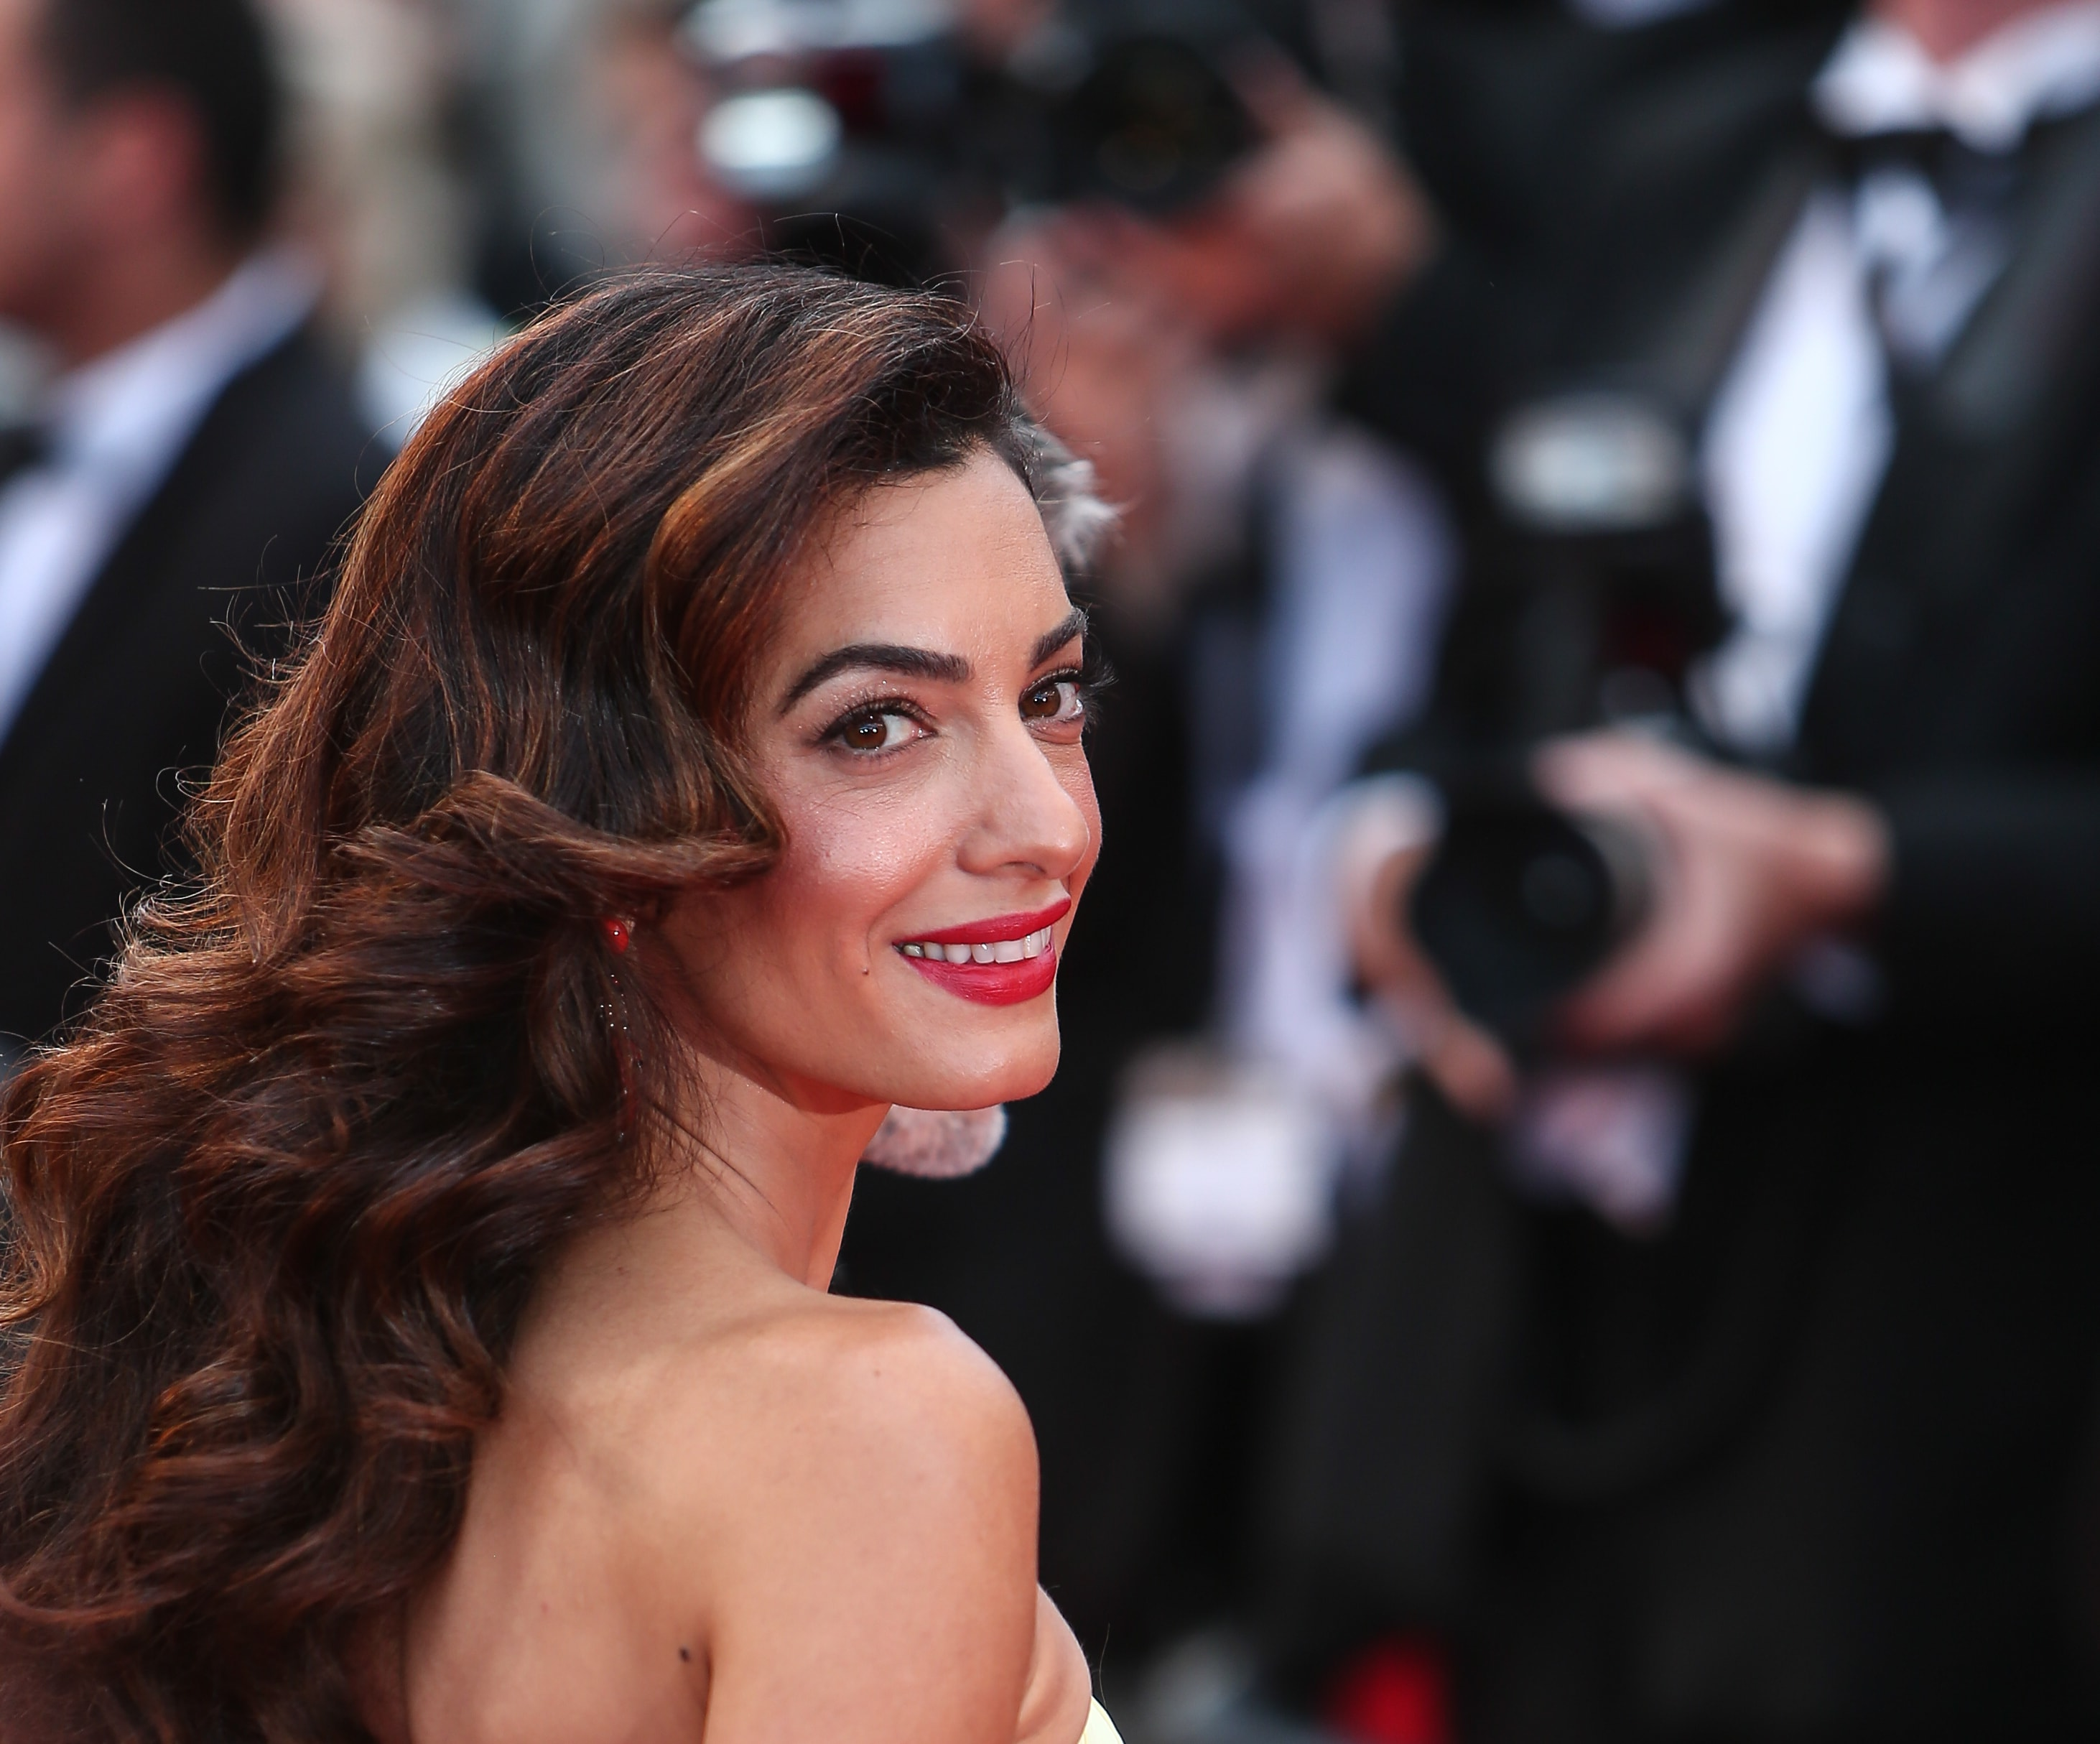 Amal Clooney, the renowned human rights lawyer and wife of George Clooney, was raised in London since the age 2, but she was actually born in Beirut and comes from a Lebanese family. (Photo: WENN)